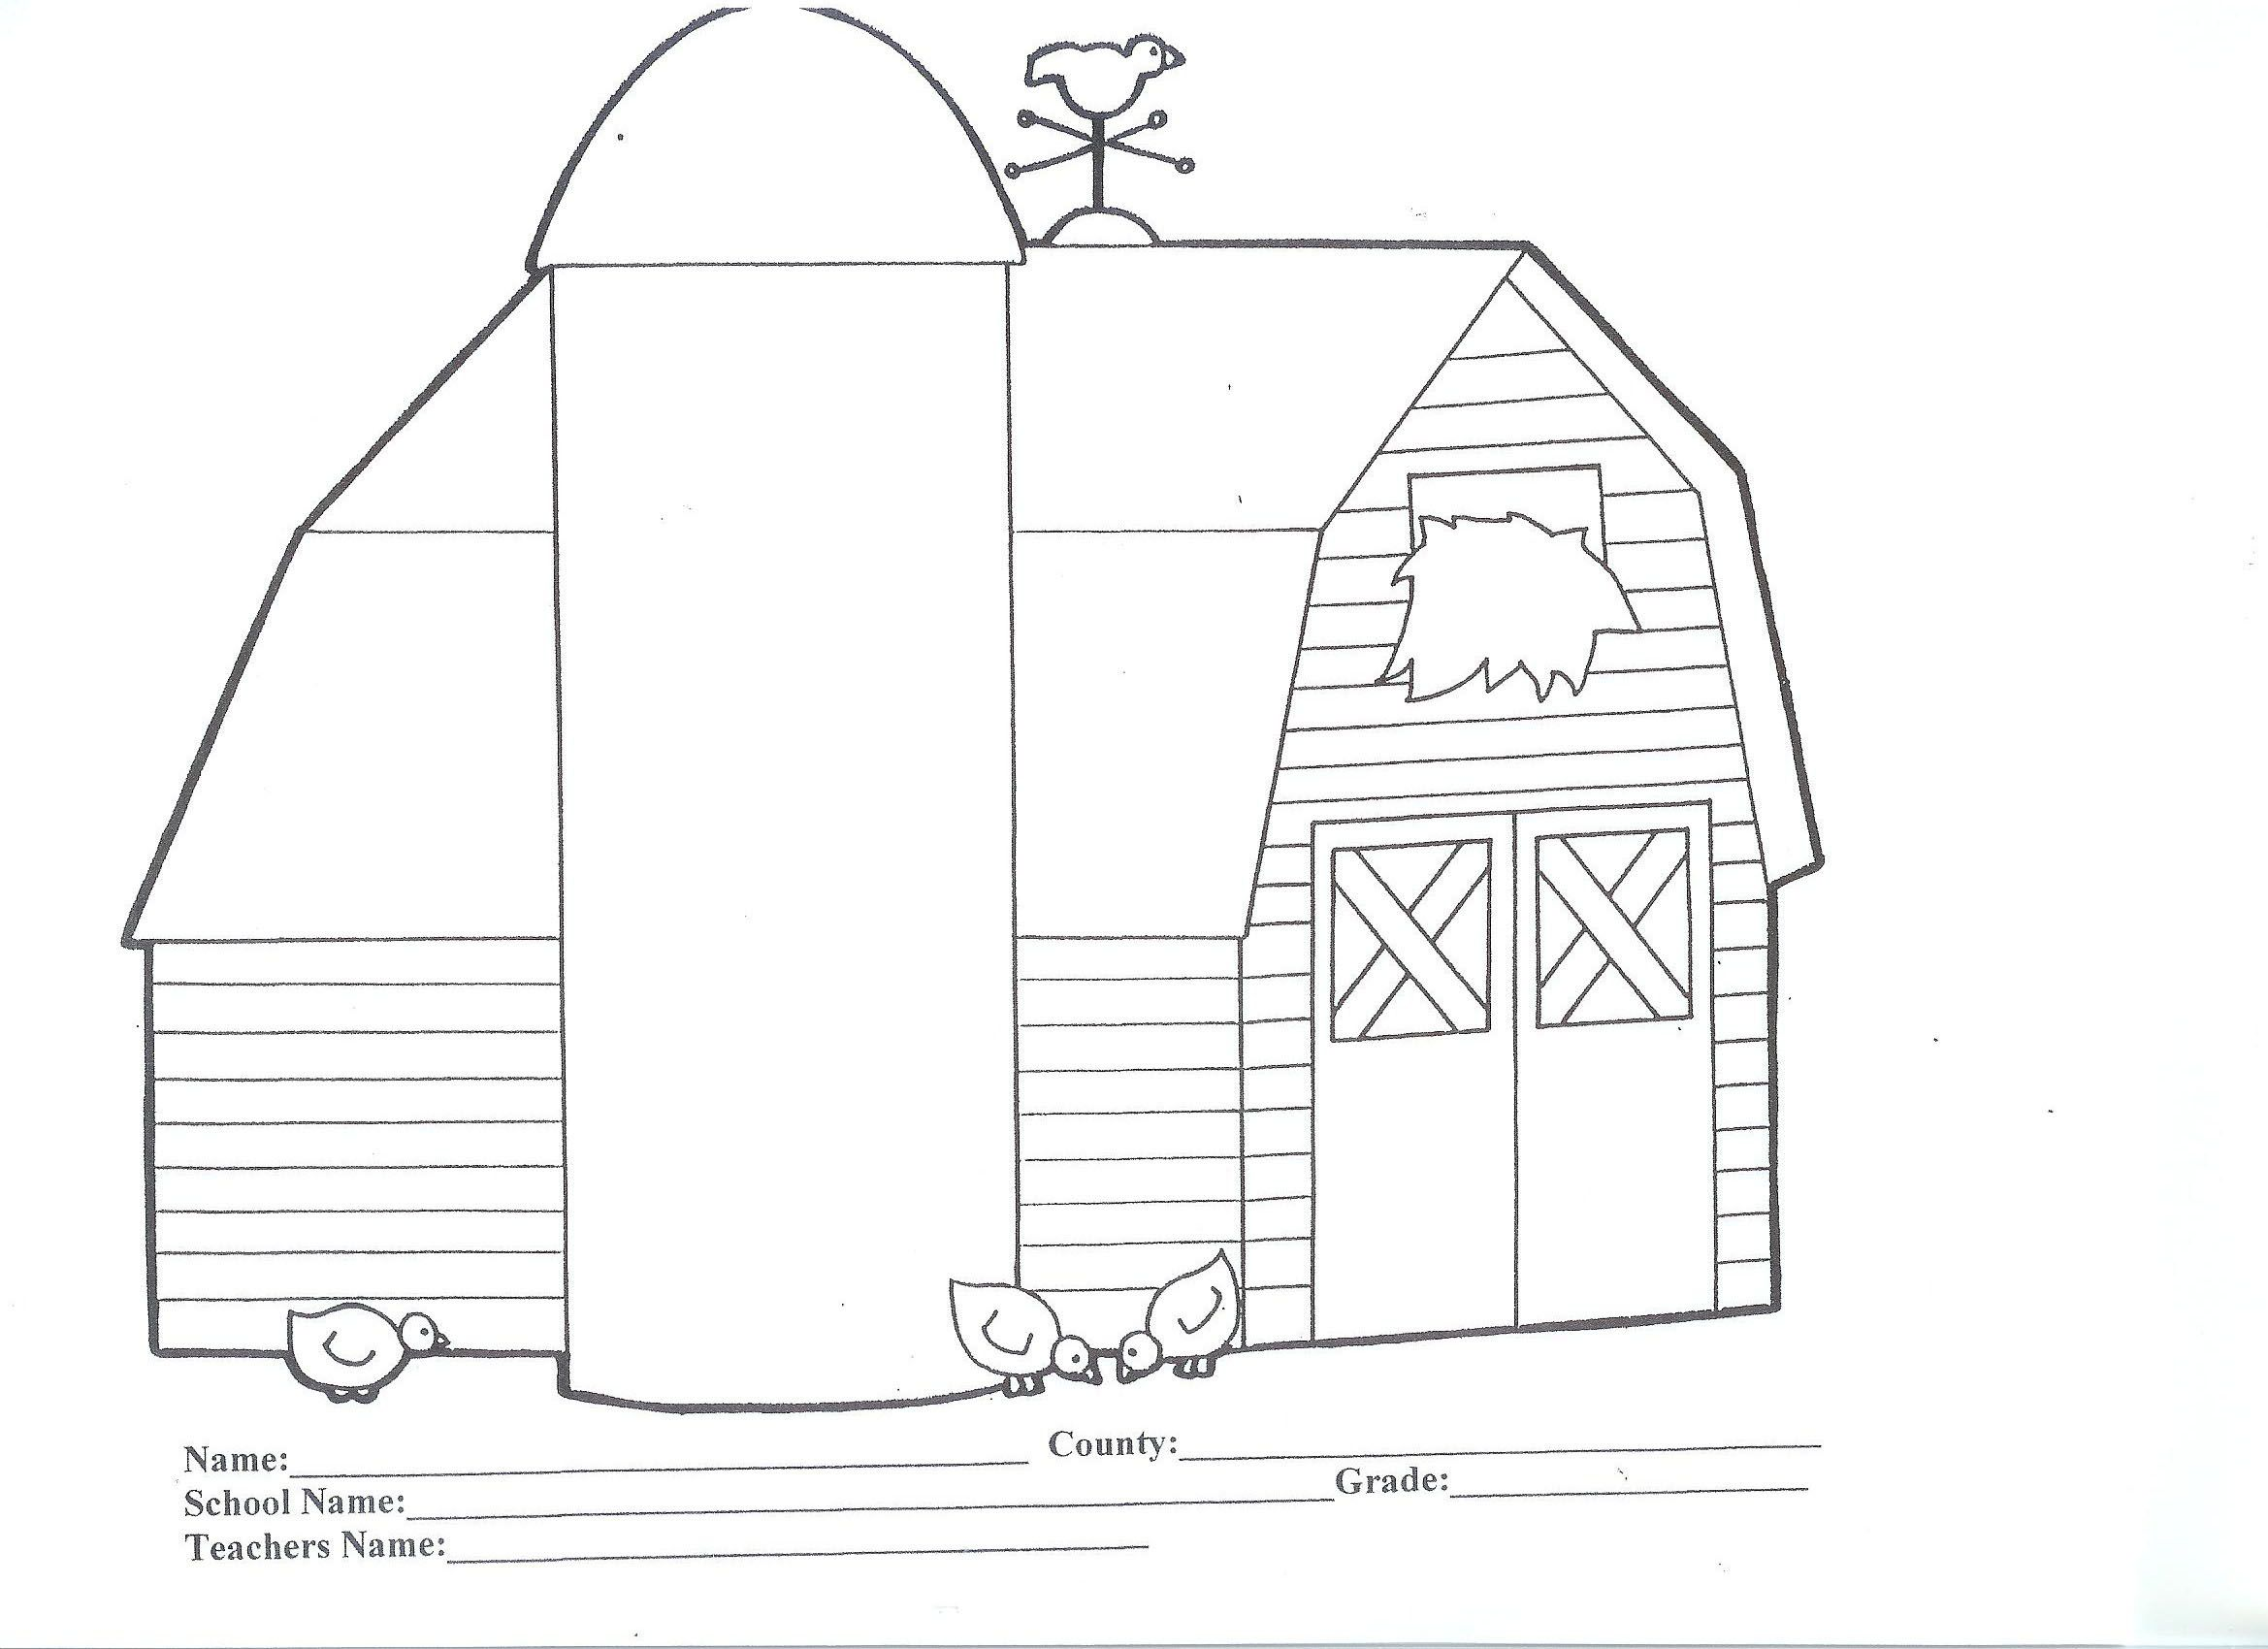 Best Photos of Barn Coloring Pages - Farm Barn Coloring Pages ...